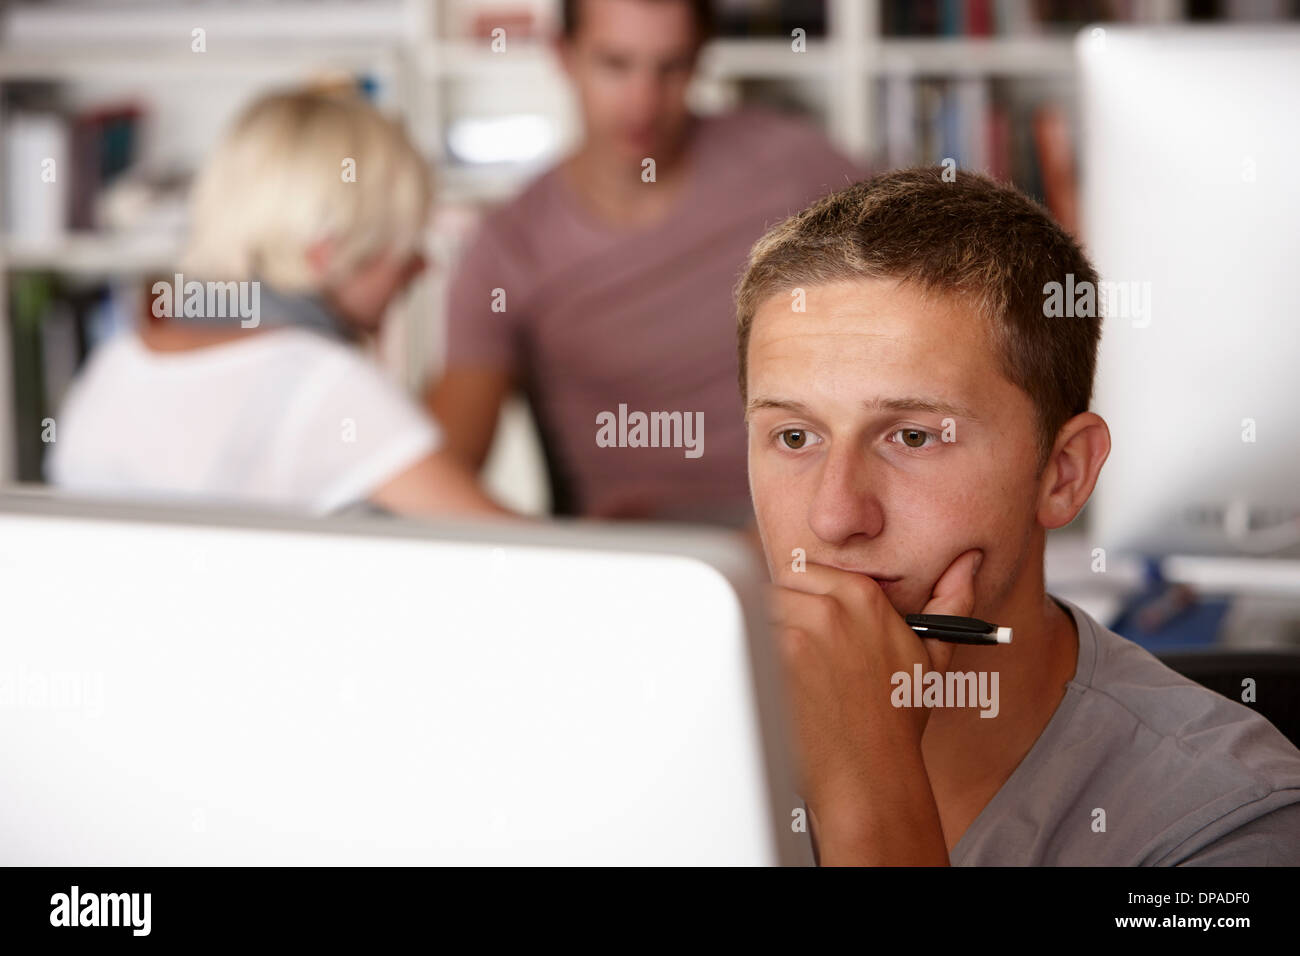 Young man using computer, hand on chin Stock Photo